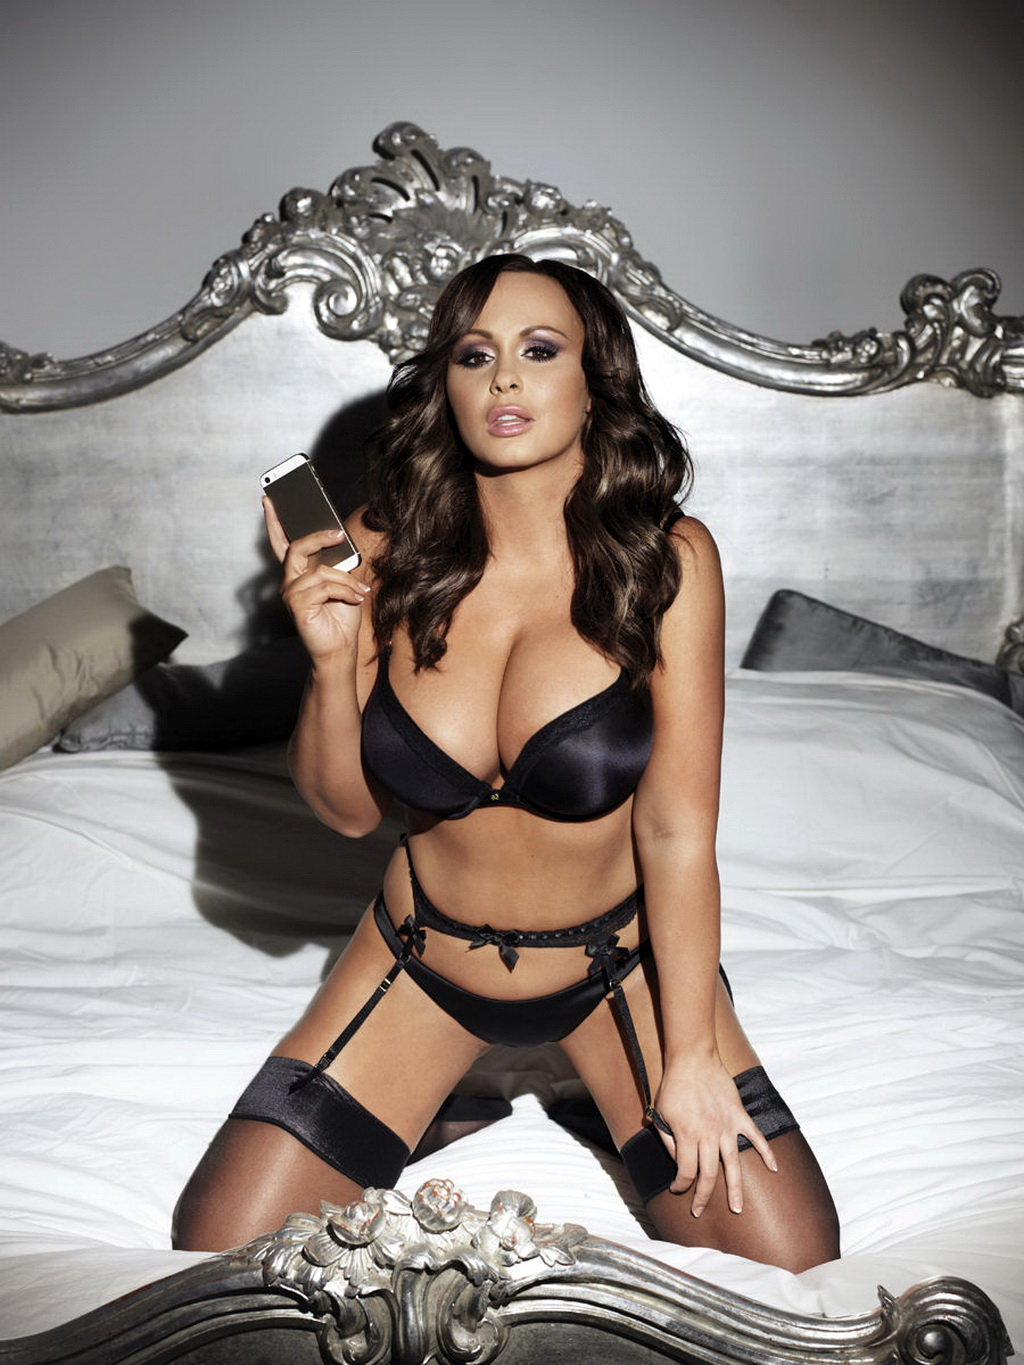 chanelle hayes blowjob